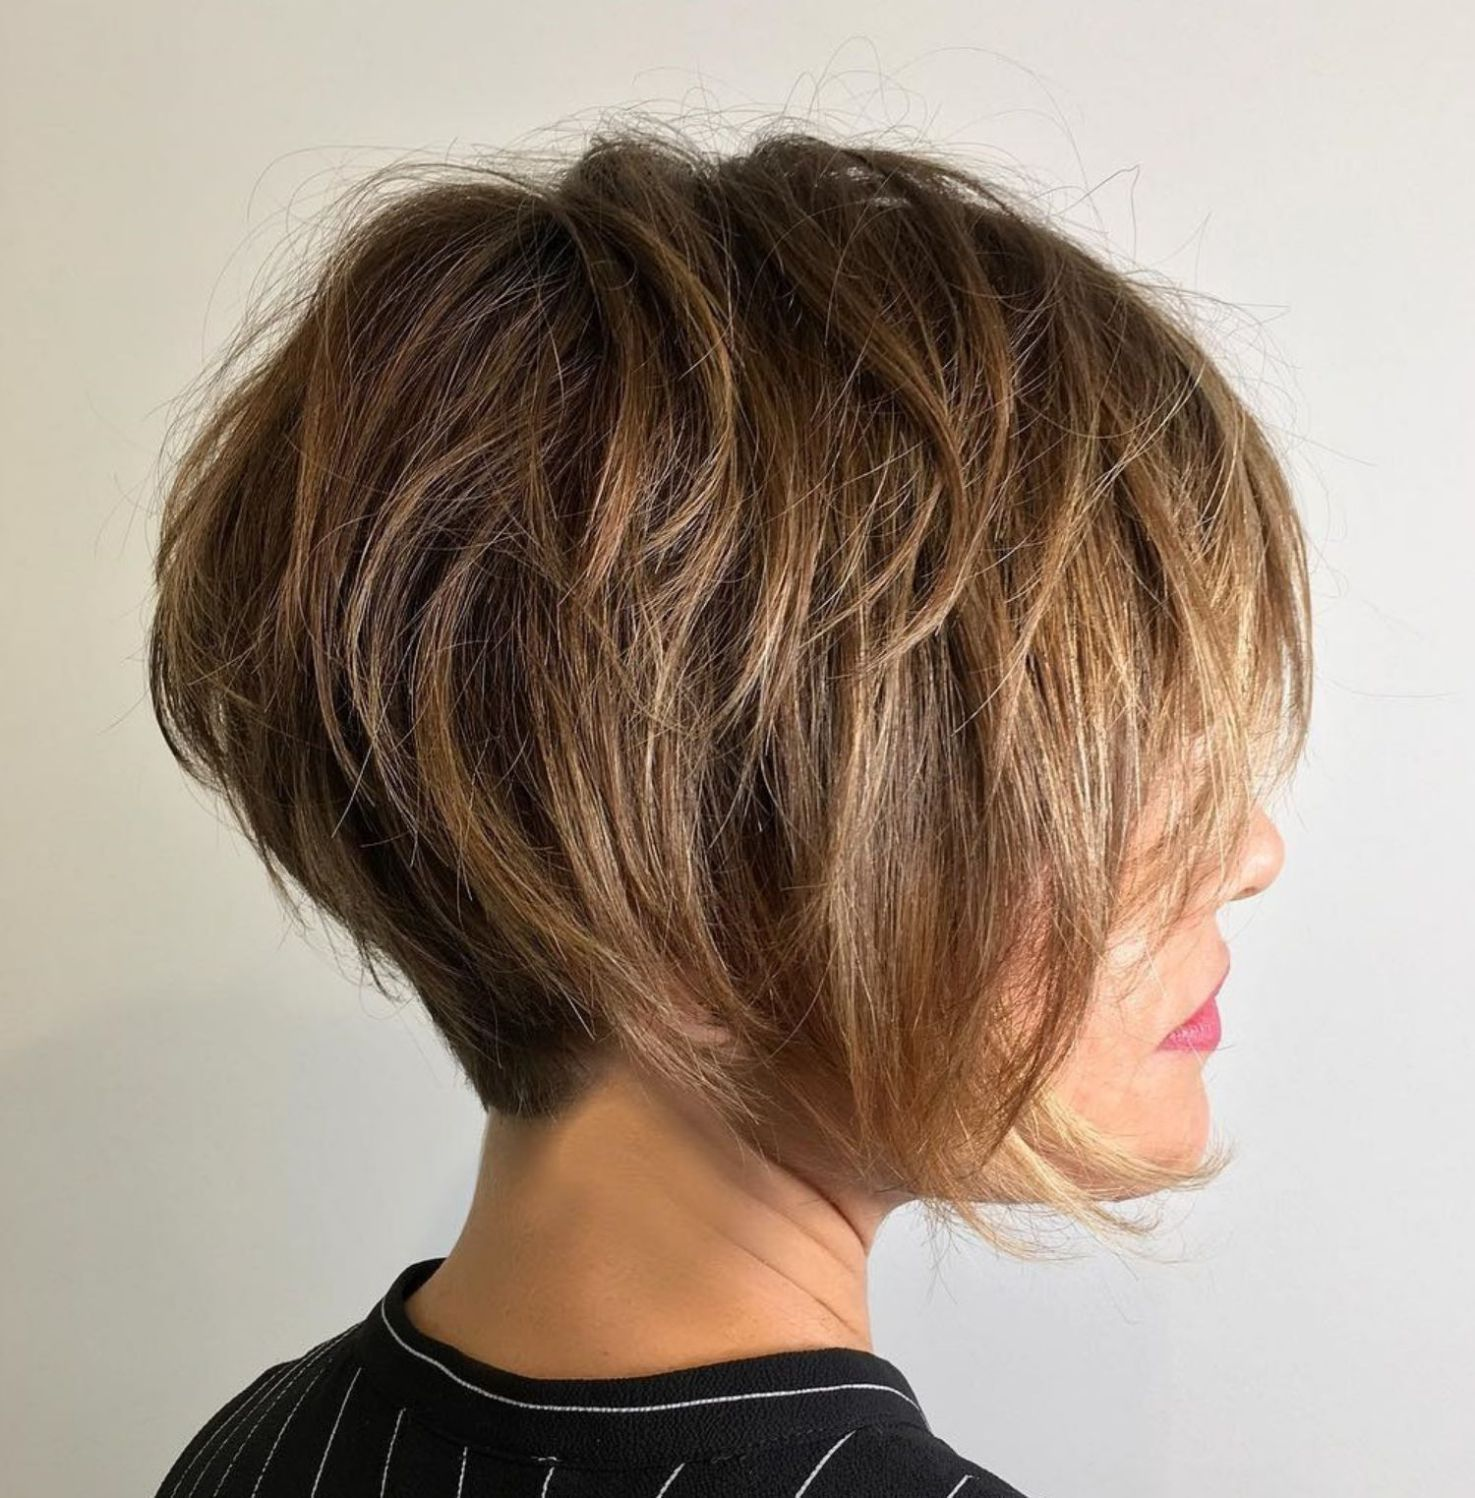 Stylish Curly Bob Hairstyles Curlybobhairstyles Hair Hairstyles Rambut